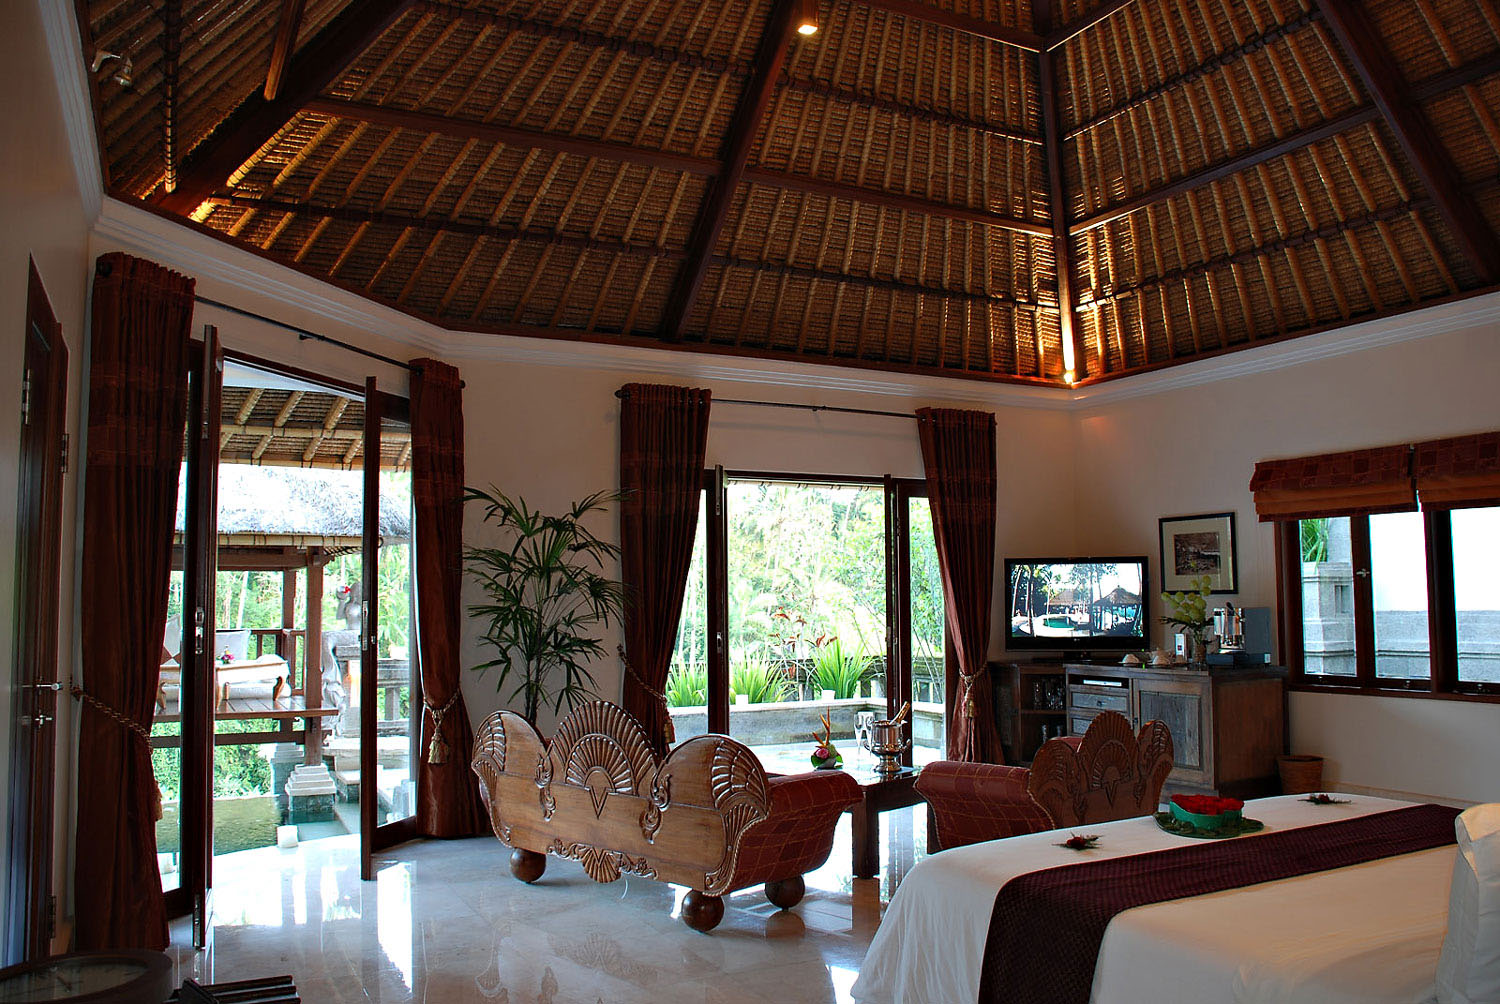 beach themed living rooms ideas red black furniture room romantic viceroy bali resort in ubud | idesignarch ...